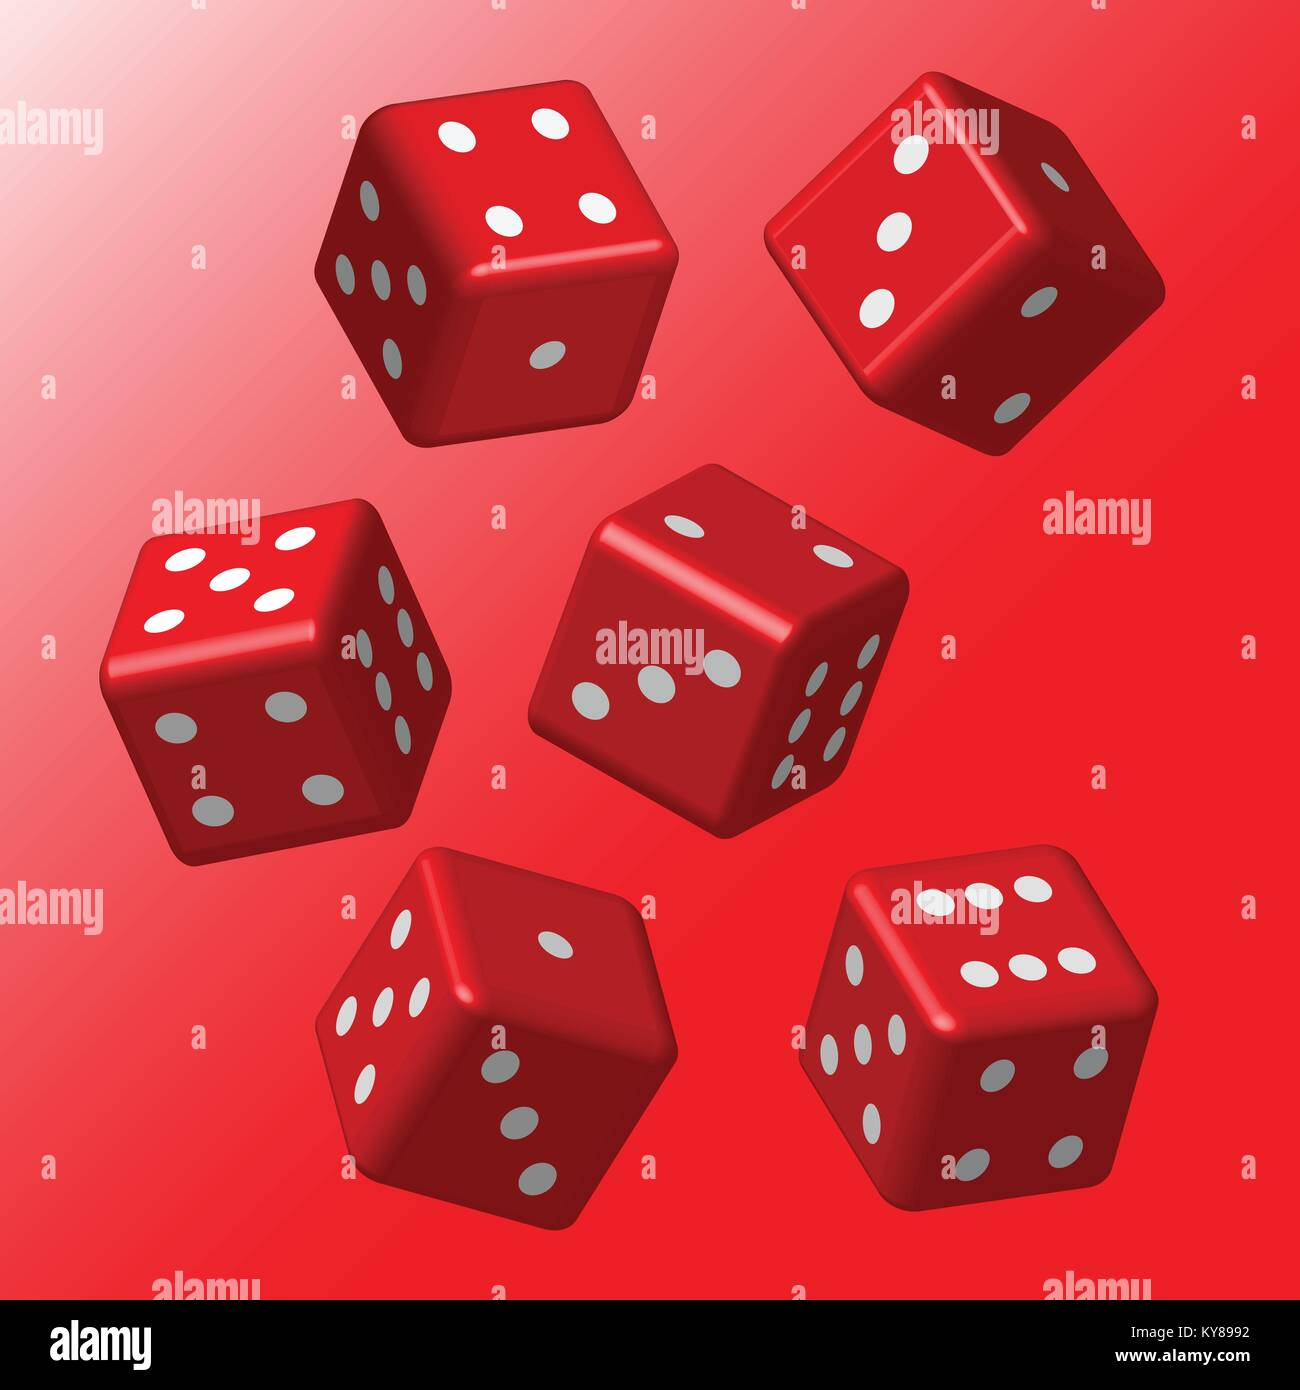 Red Dice with White Points - Stock Image